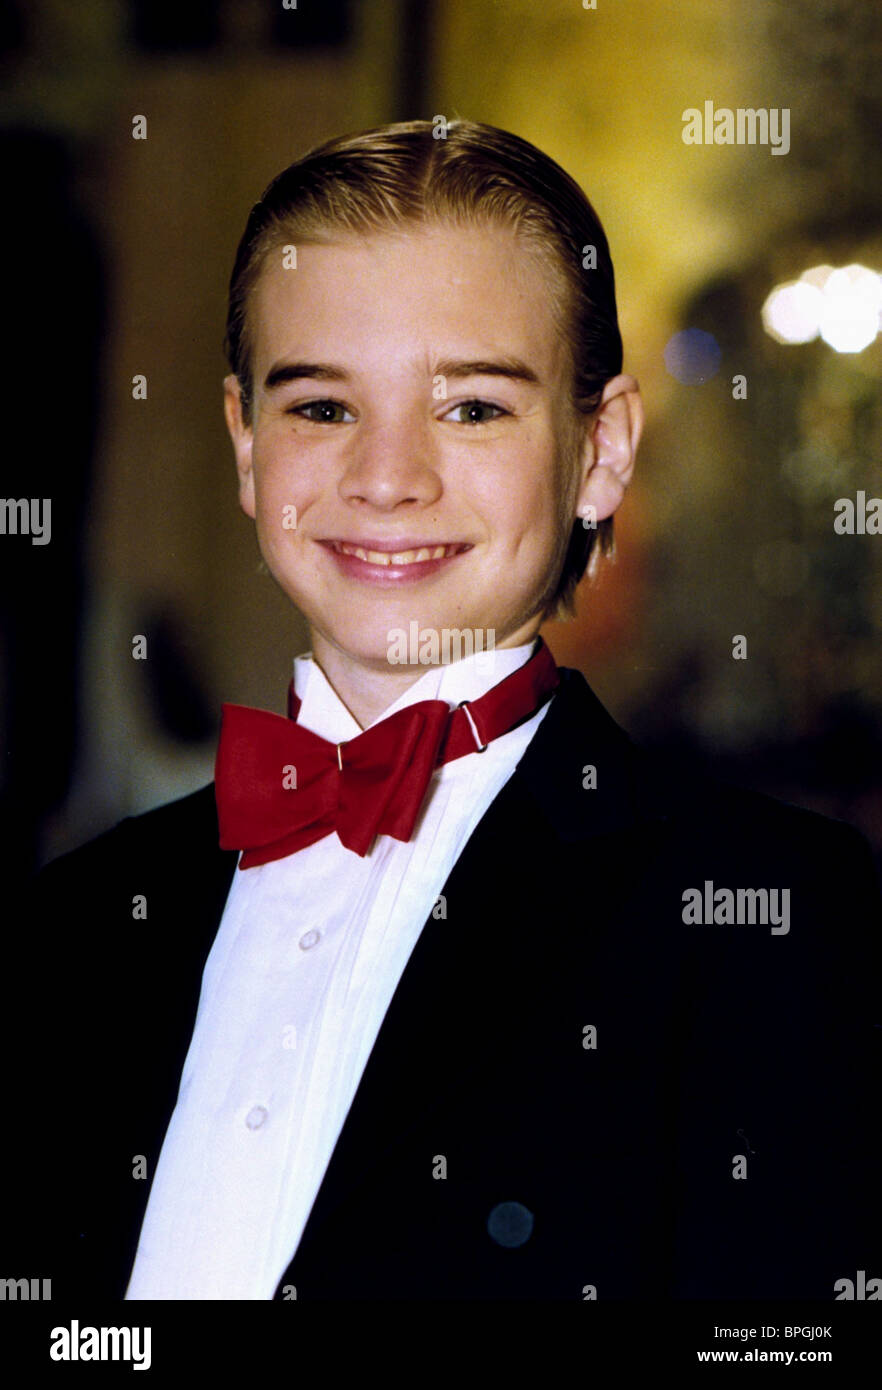 Richie Richs Christmas Wish.David Gallagher Richie Rich S Christmas Wish 1998 Stock